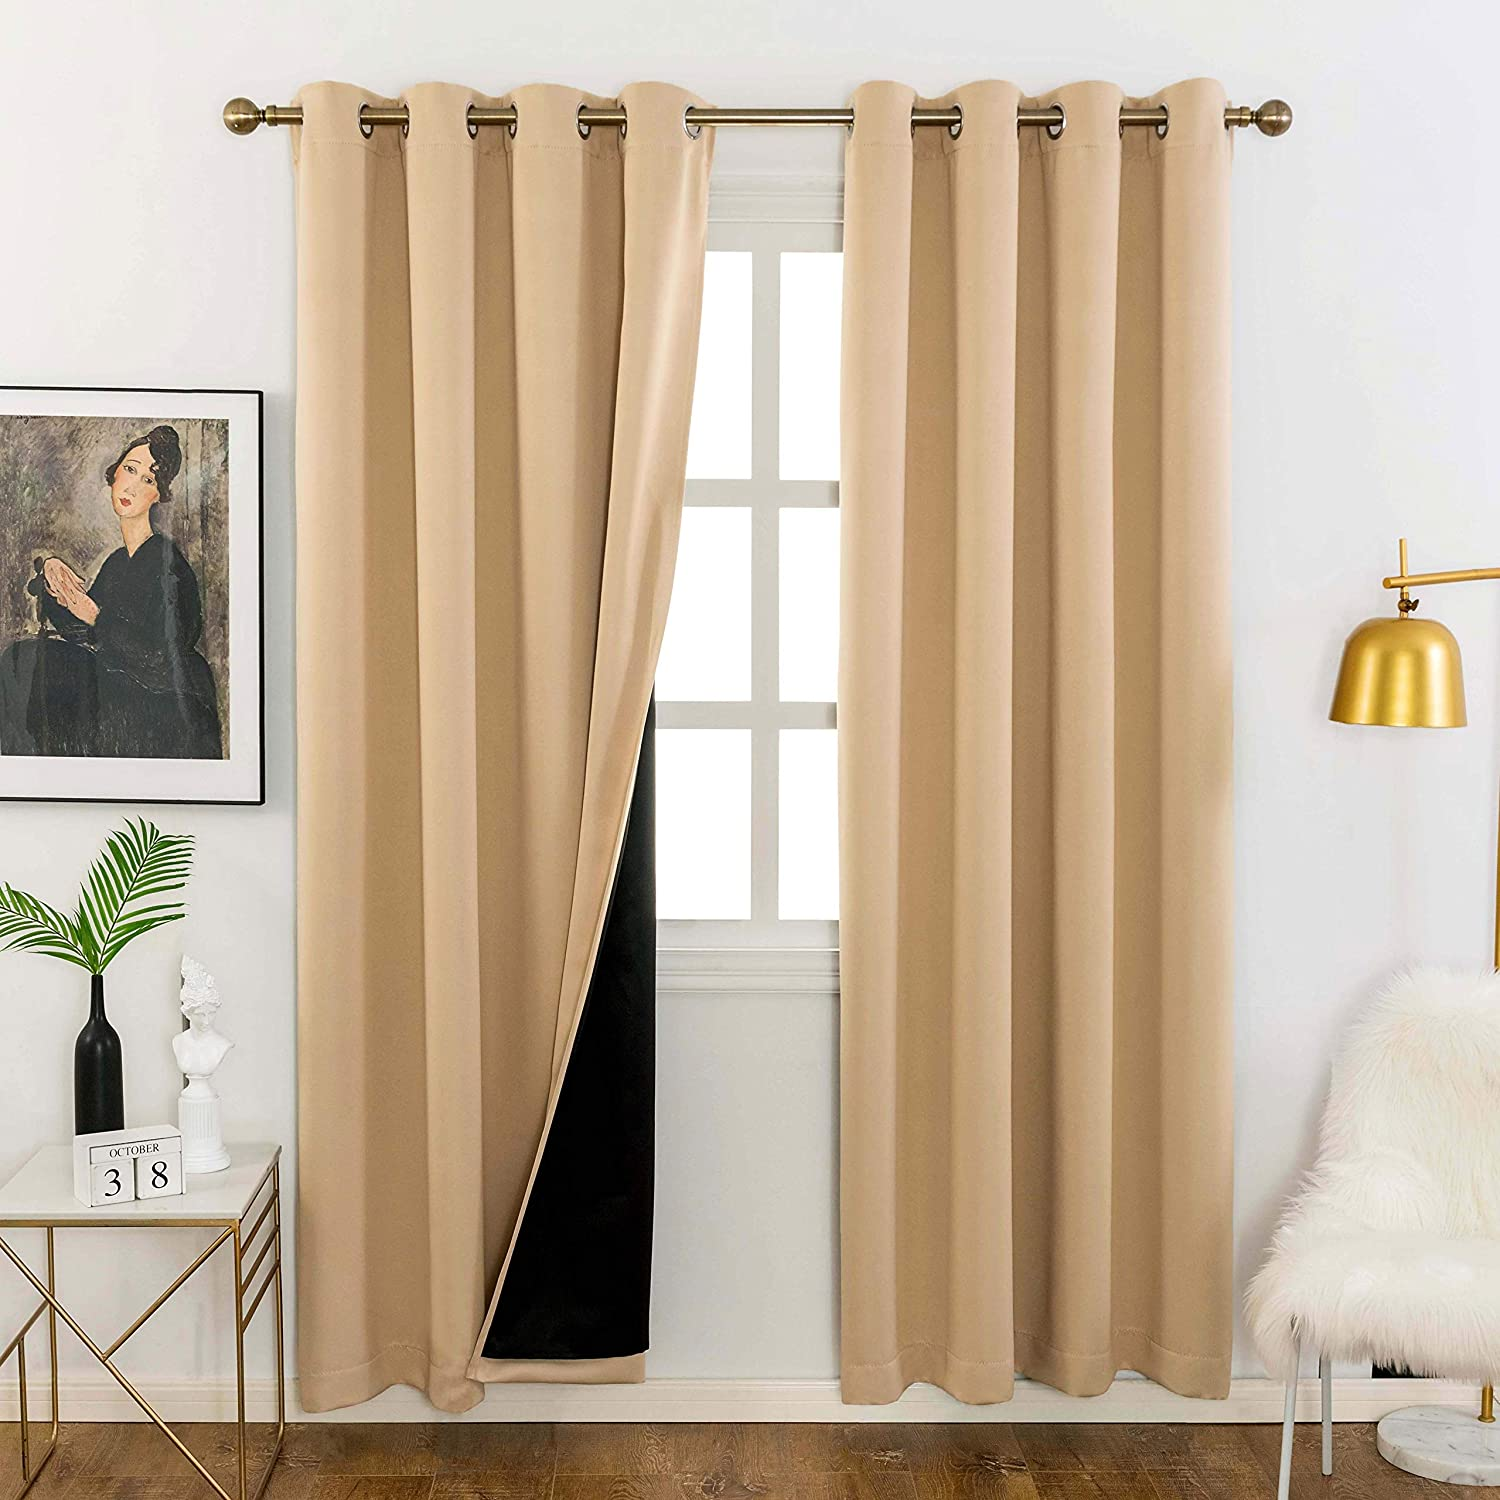 Home Brilliant Full Blackout Curtain Panels Complete Blackout Draperies with Black Liner for Short Window (Biscotti Beige, Set of 2 Pcs, 52 by 63inch)